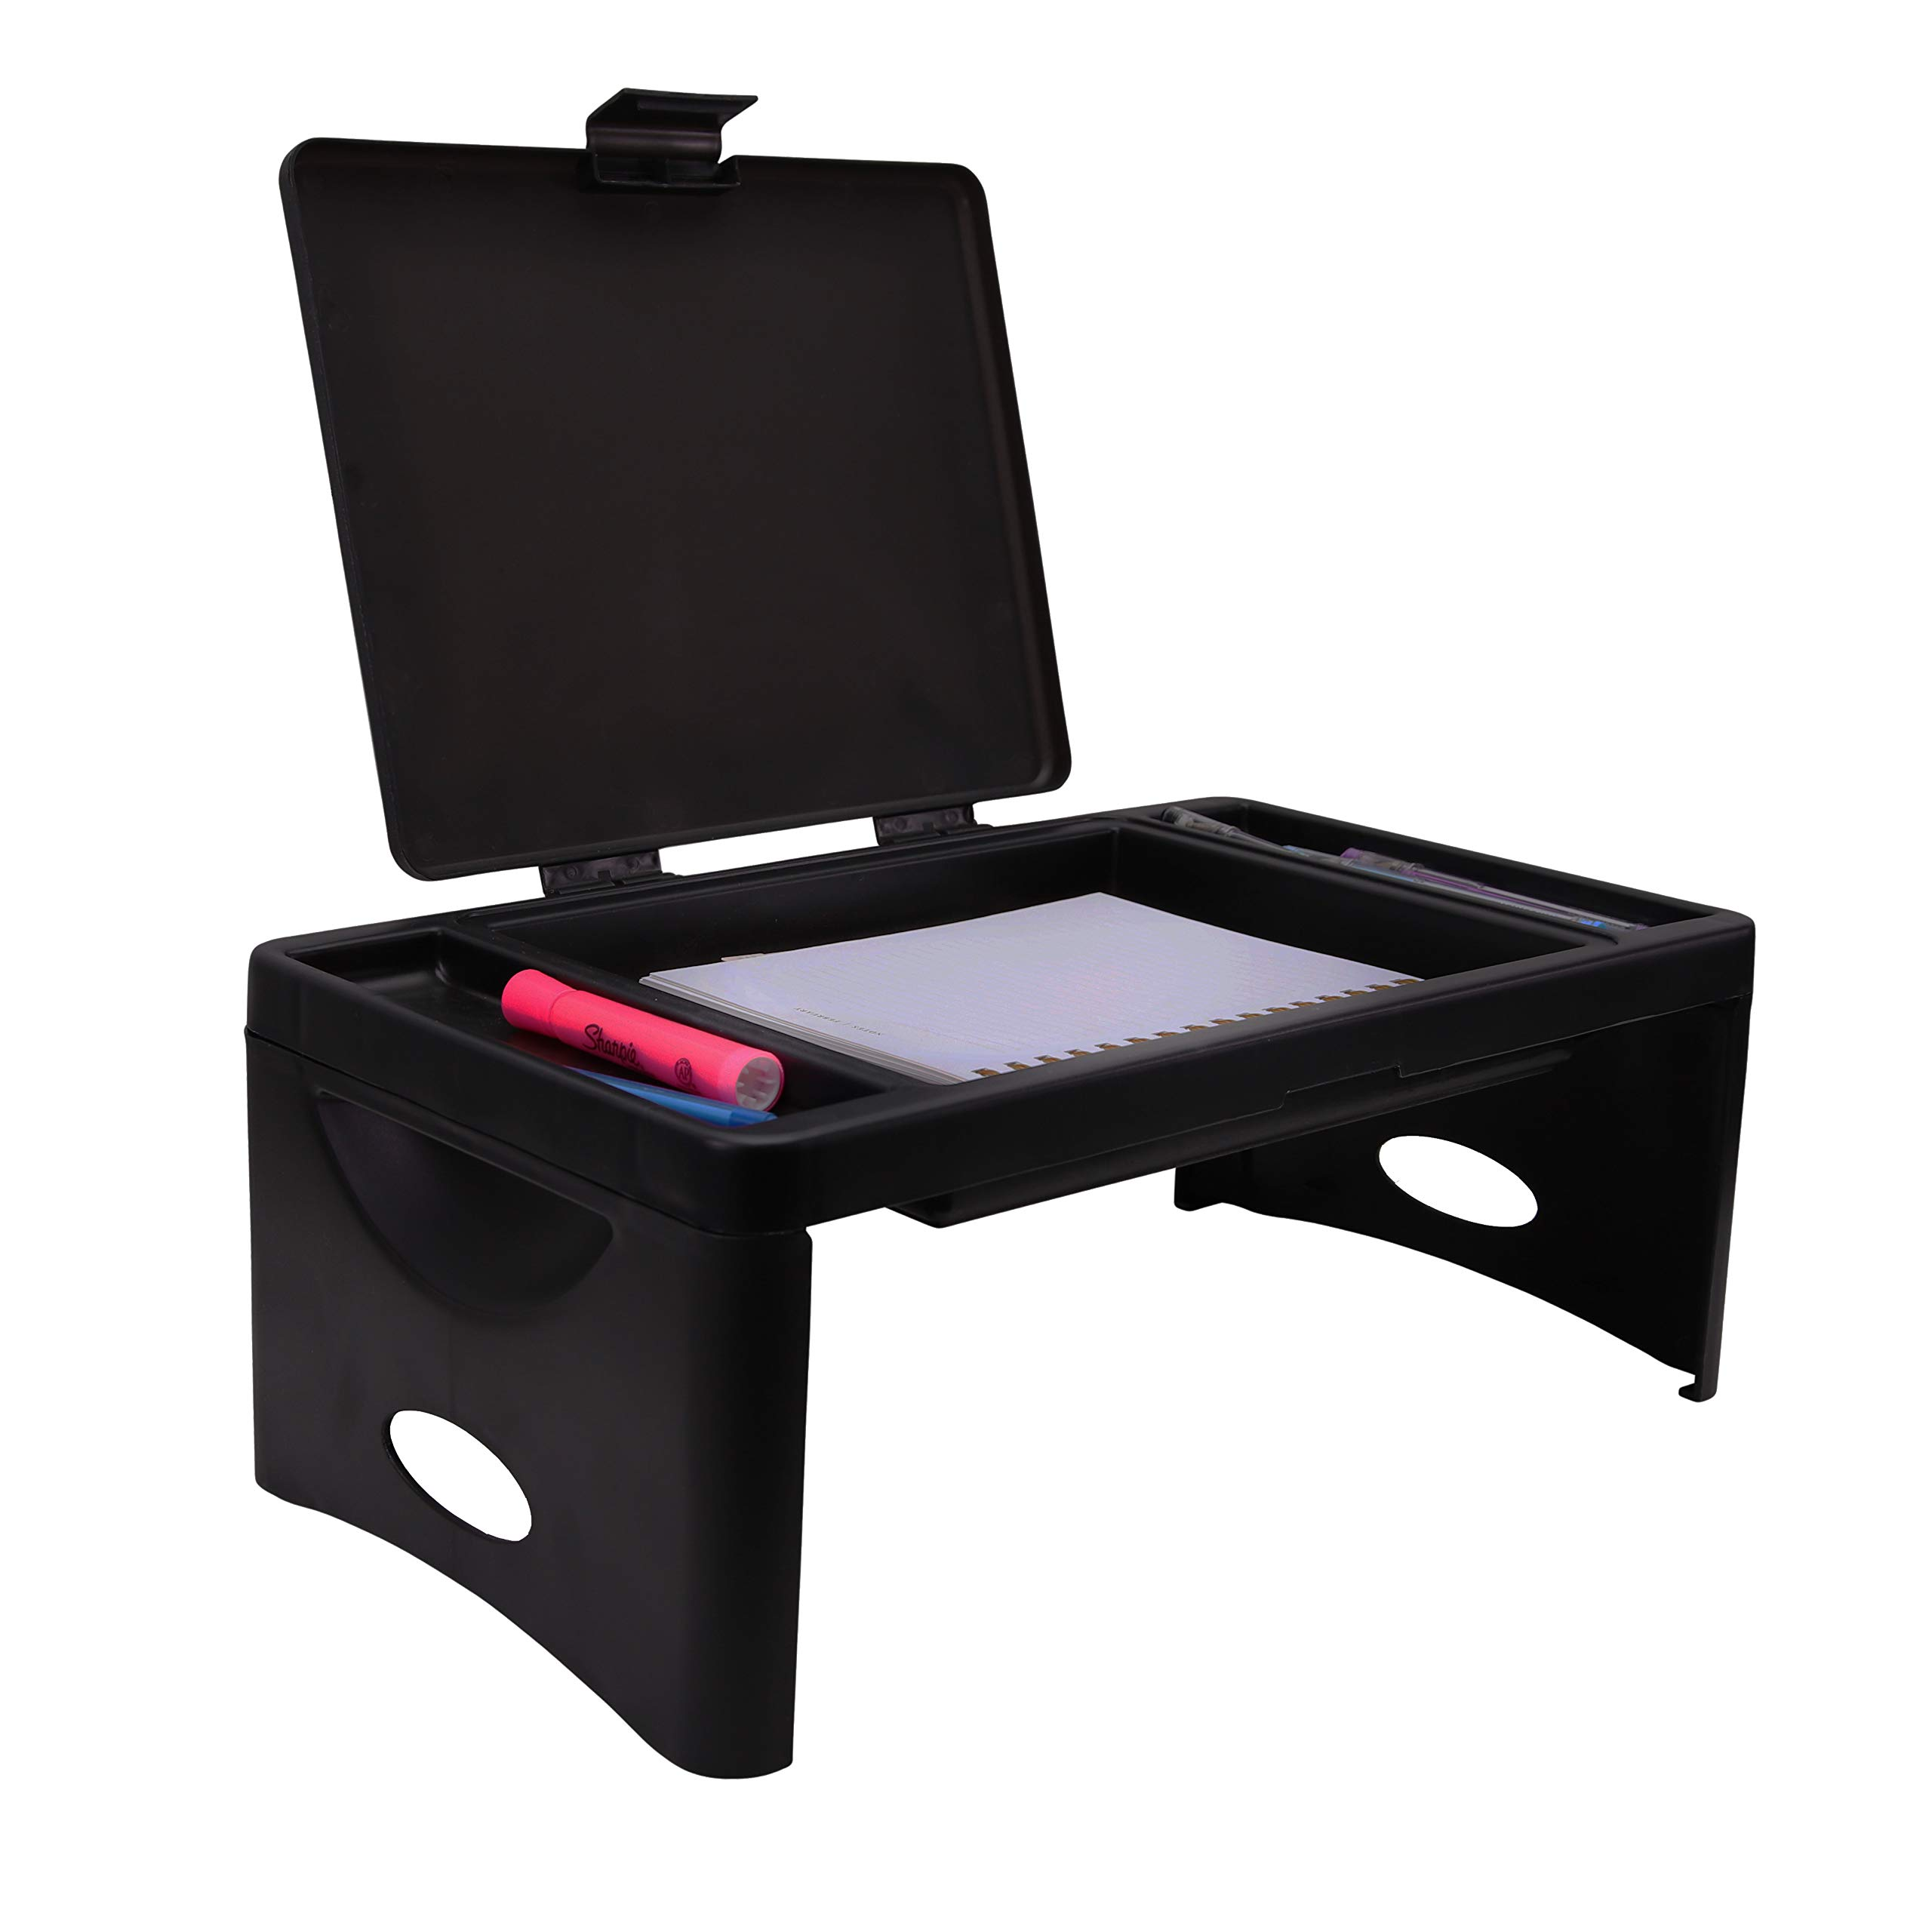 Foldable Lap Desk with Storage Pocket   Perfect use for Laptops, Travel, Breakfast in Bed, Gaming and Much More!